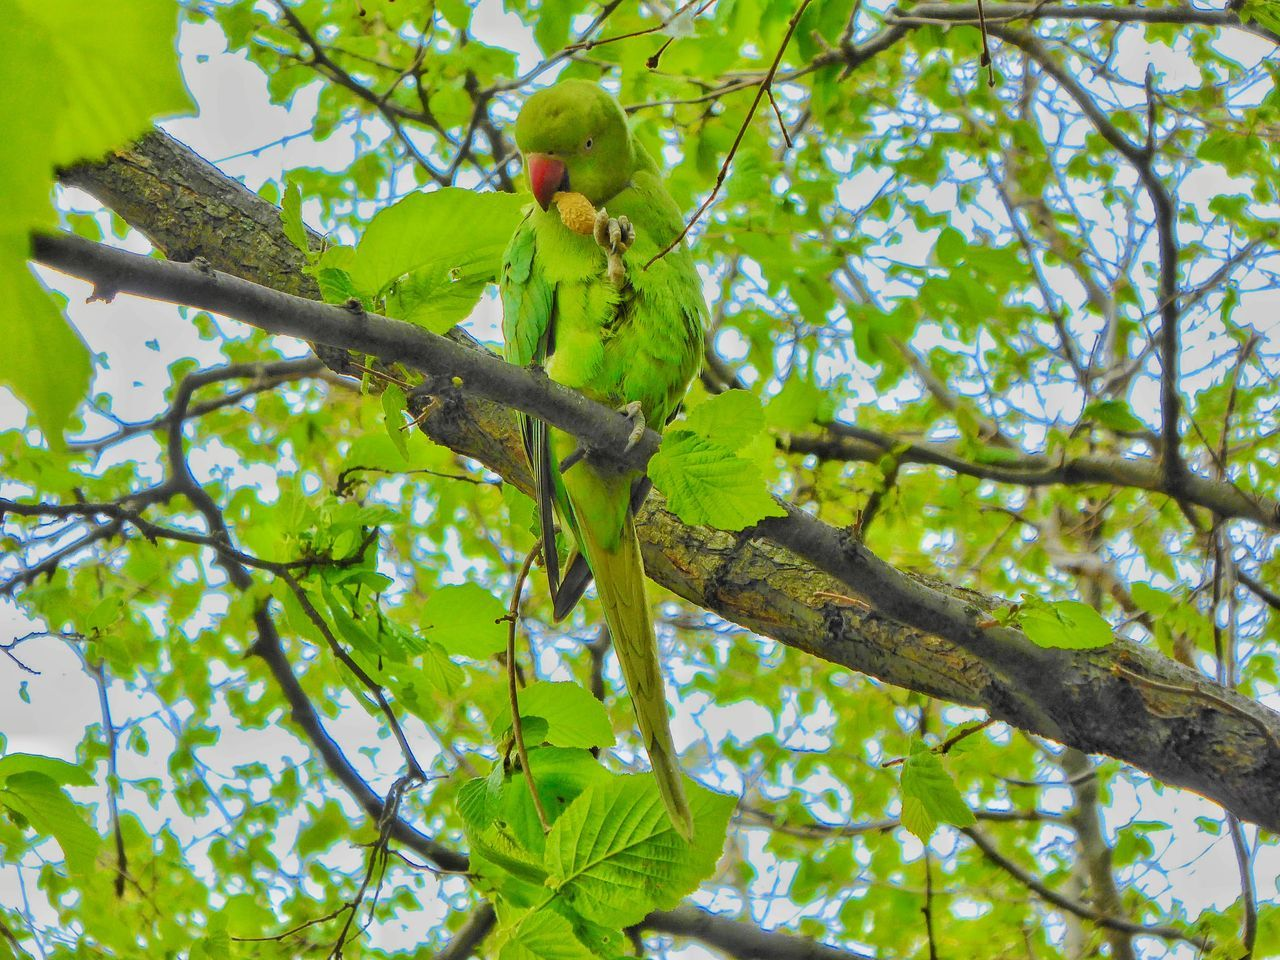 Ring-necked Parakeet Rose Ring Parakeet Rose Ringed Parakeets London Park London Parks Hyde Park Hyde Park, London London LONDON❤ My London Urban Wildlife Wildlife Wildlife & Nature Wildlife Photography Wildlifephotography Birds Bird Photography Birds_collection Birdwatching Camouflage Camouflaged